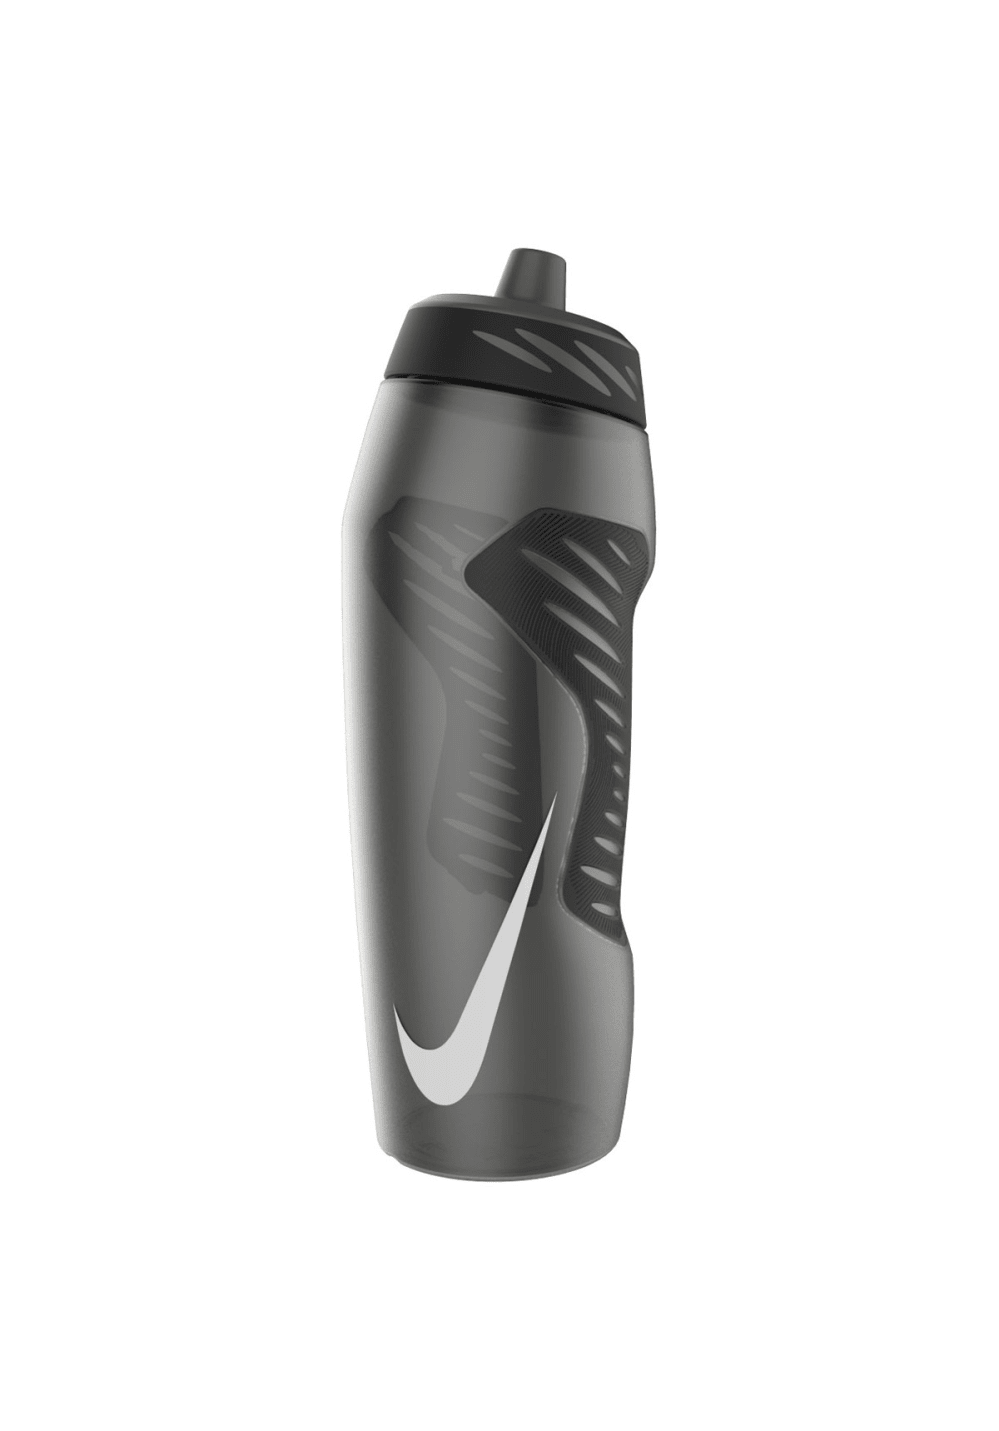 Nike Hyperfuel Water Bottle 32oz (946 Ml) - Bottles / Bottle holders - Grey